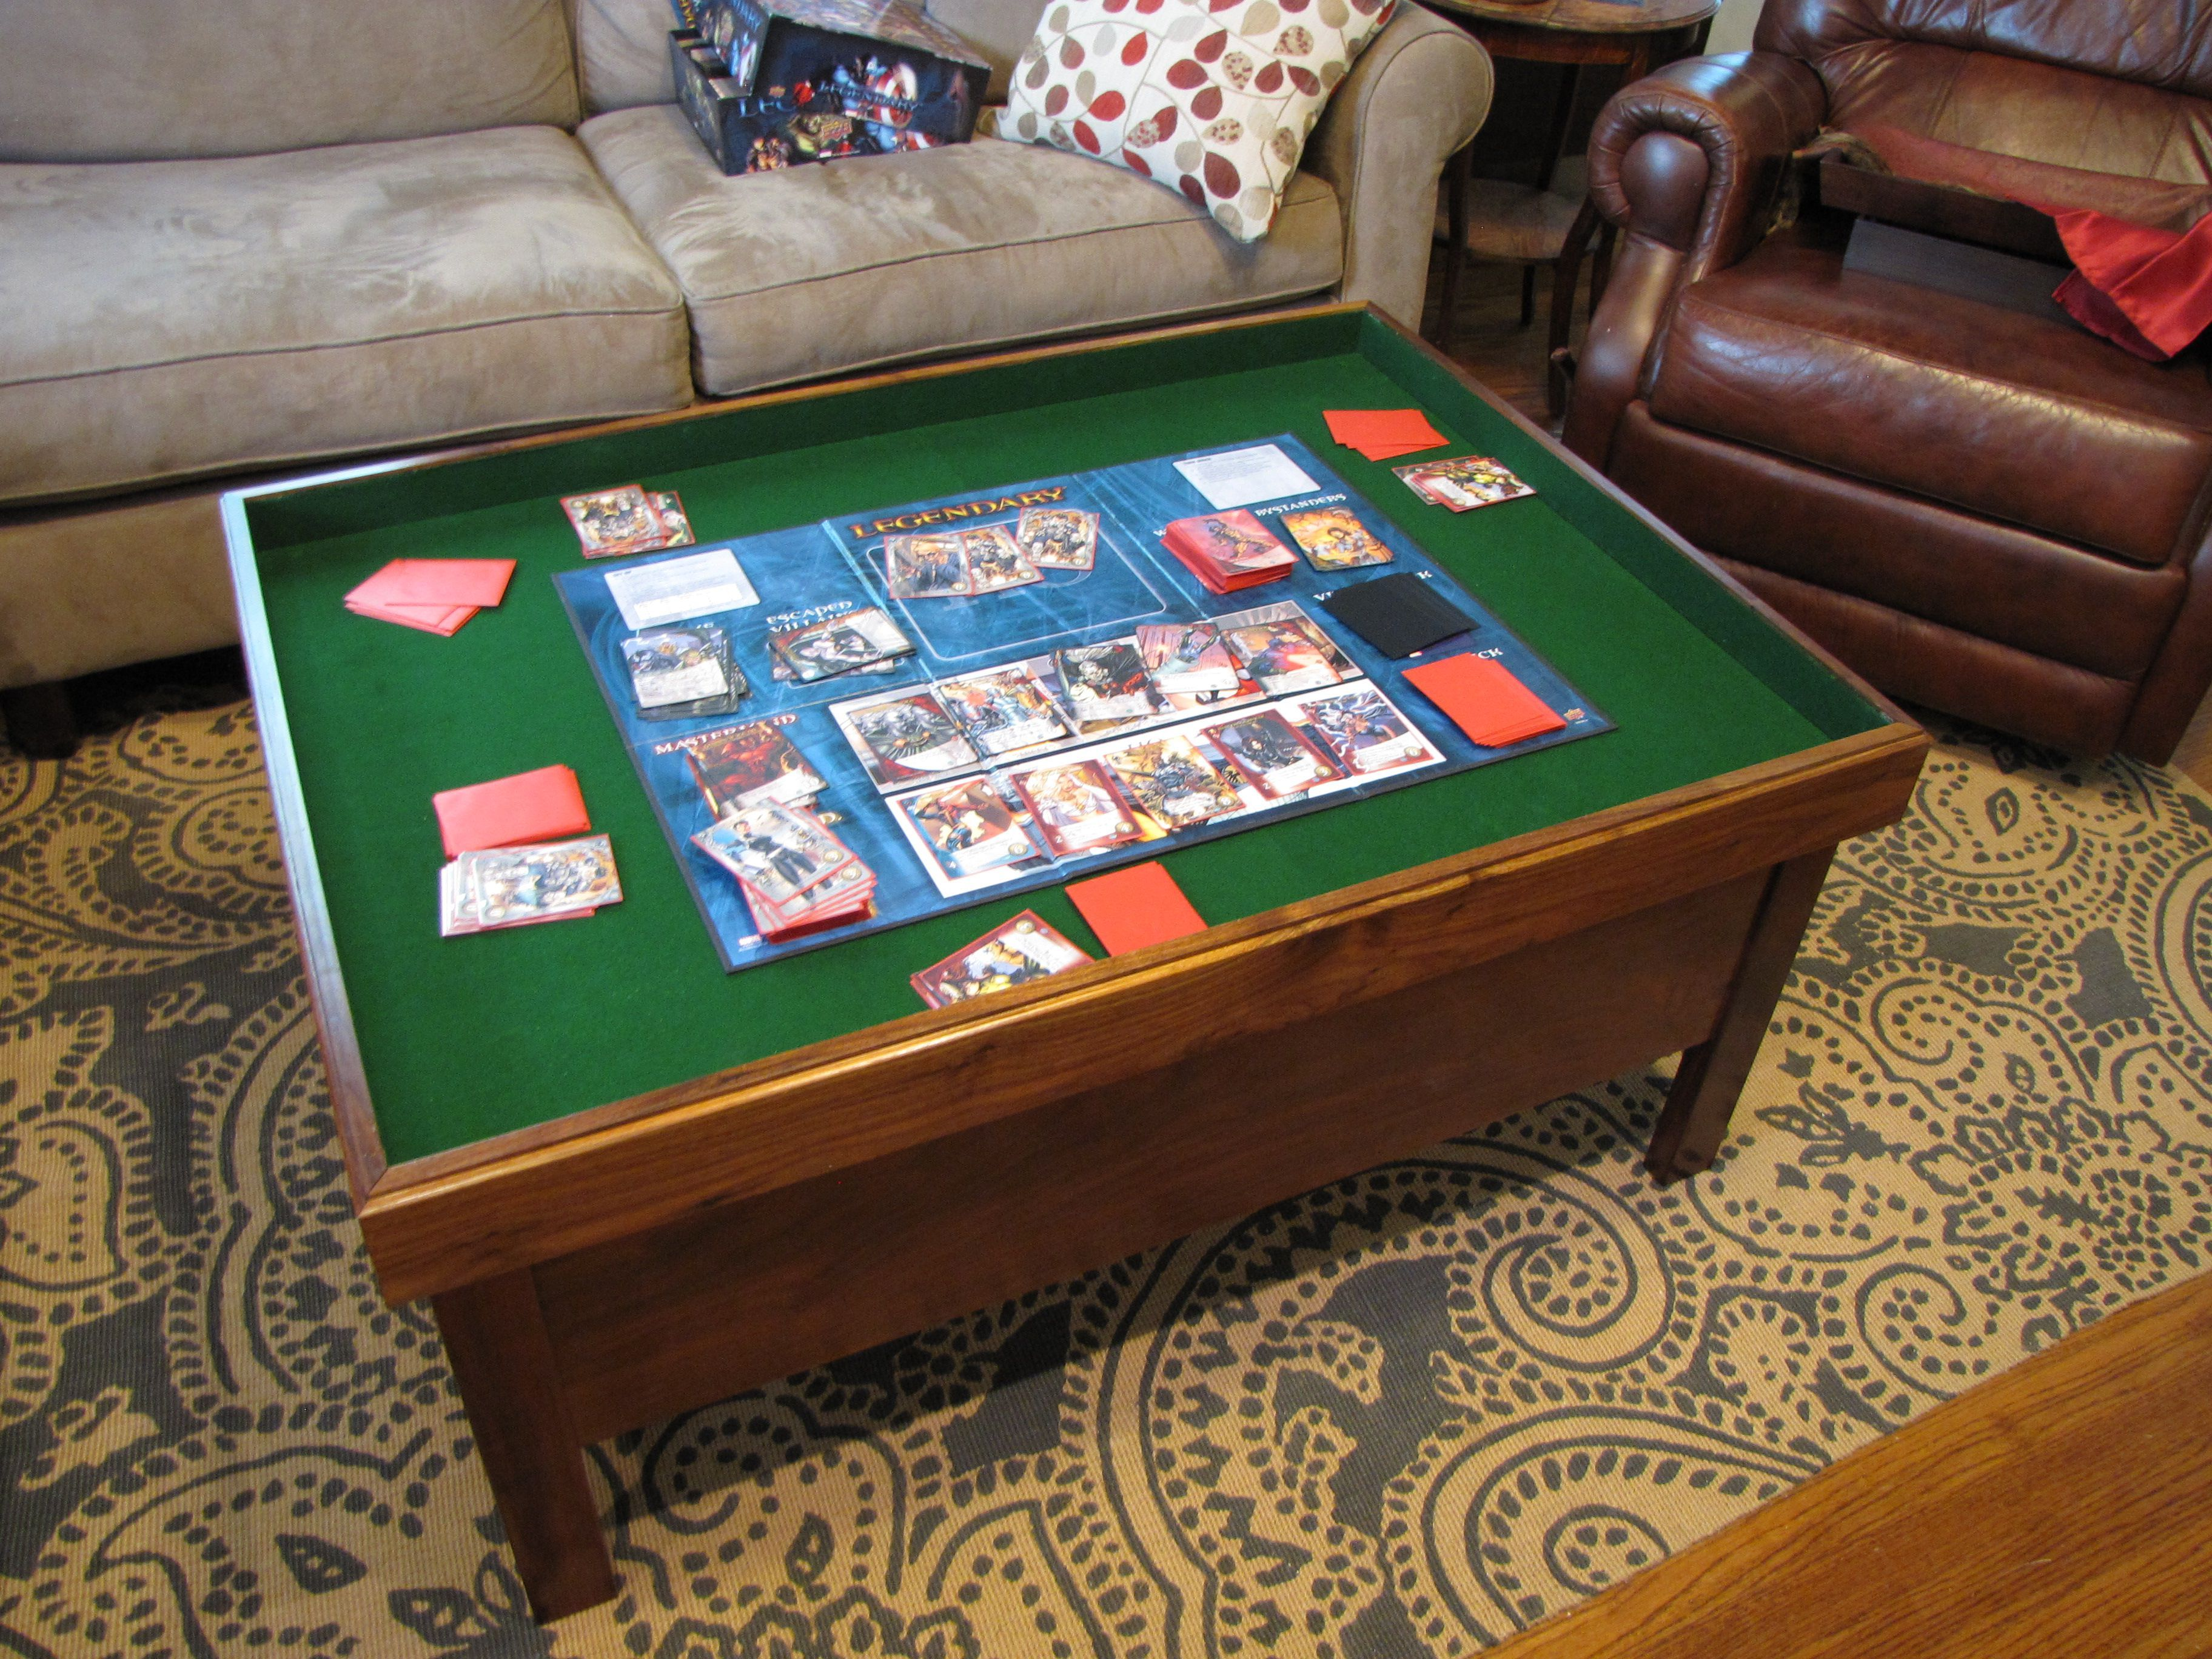 Heirloom Wood Gaming Coffee Table just arrived